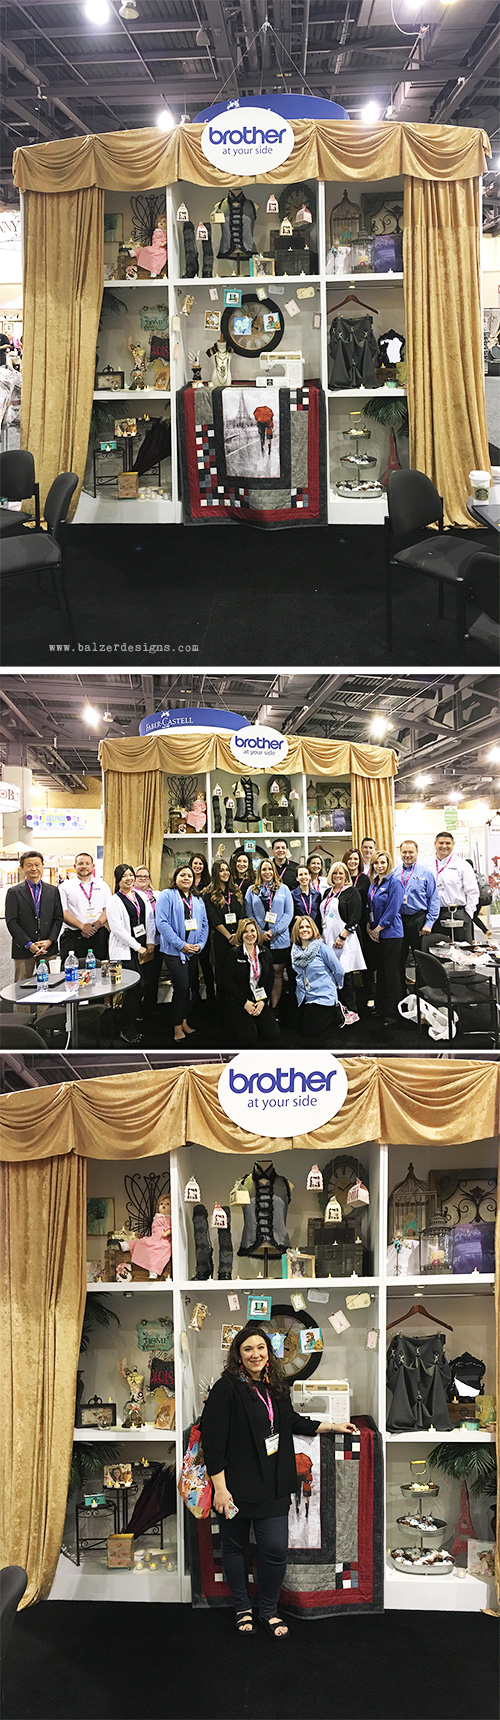 BrotherBooth-wm